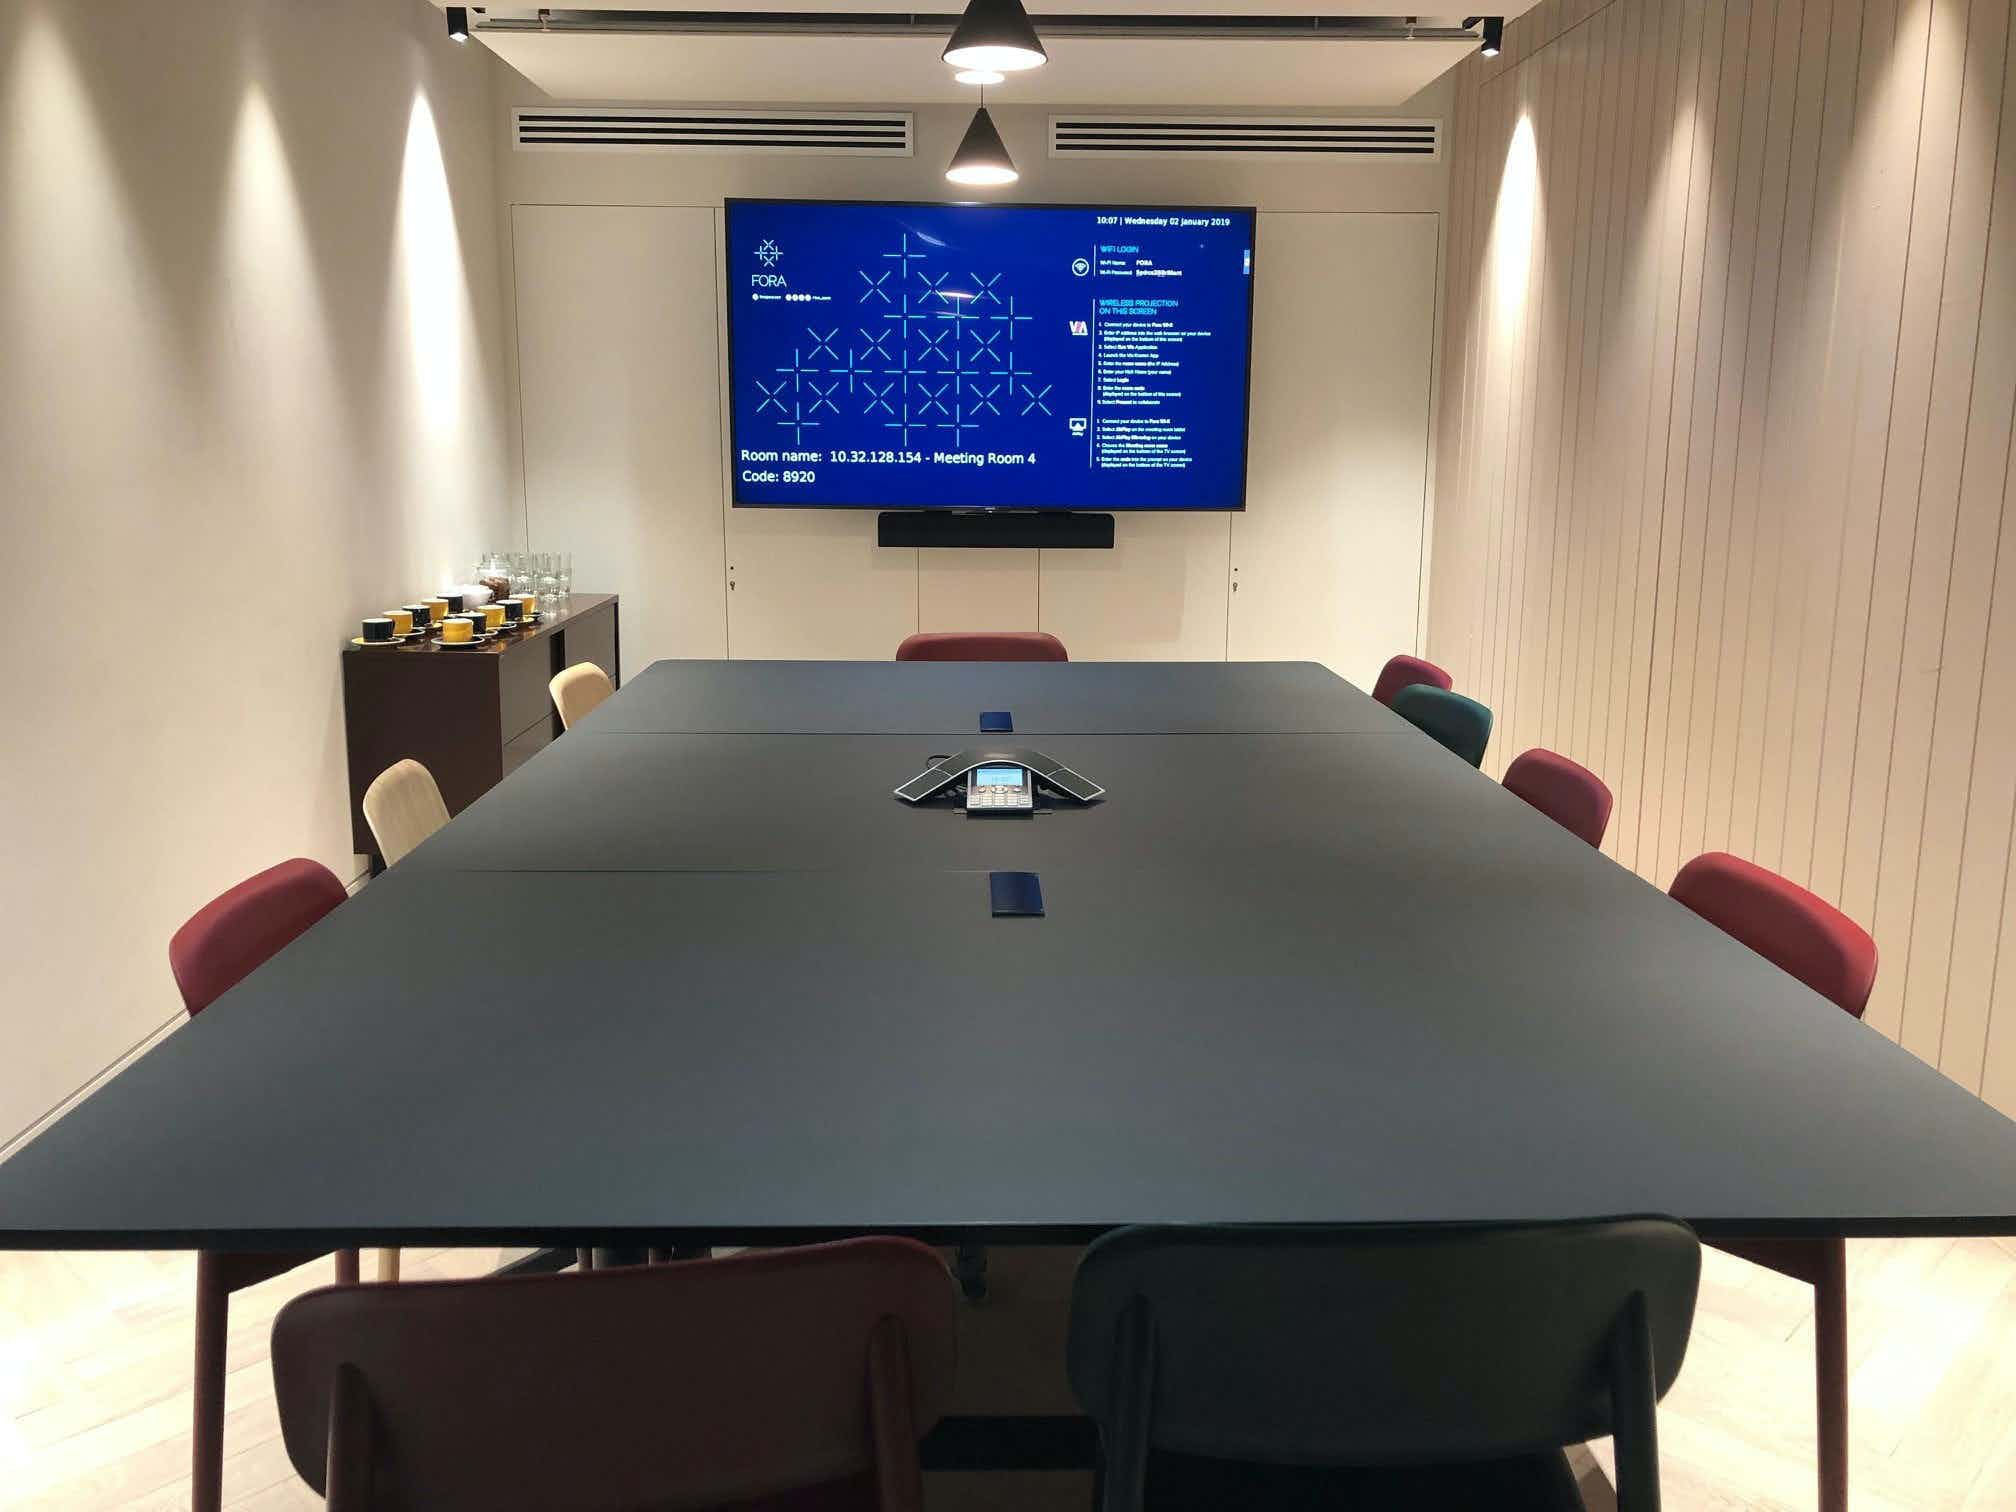 Meeting Room 4, Fora Reading